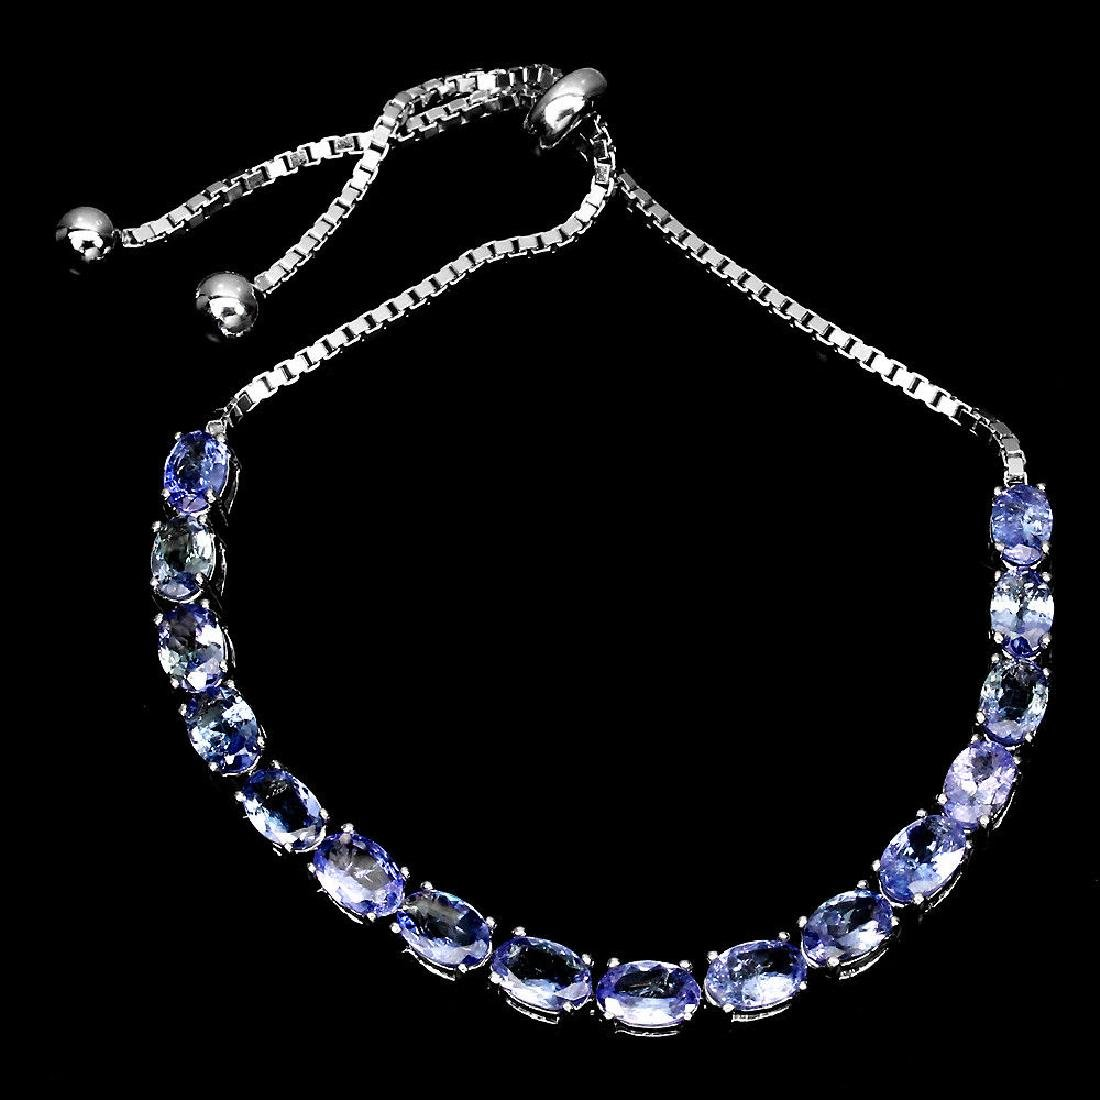 Natural Blue Violet Tanzanite Bracelet - 2